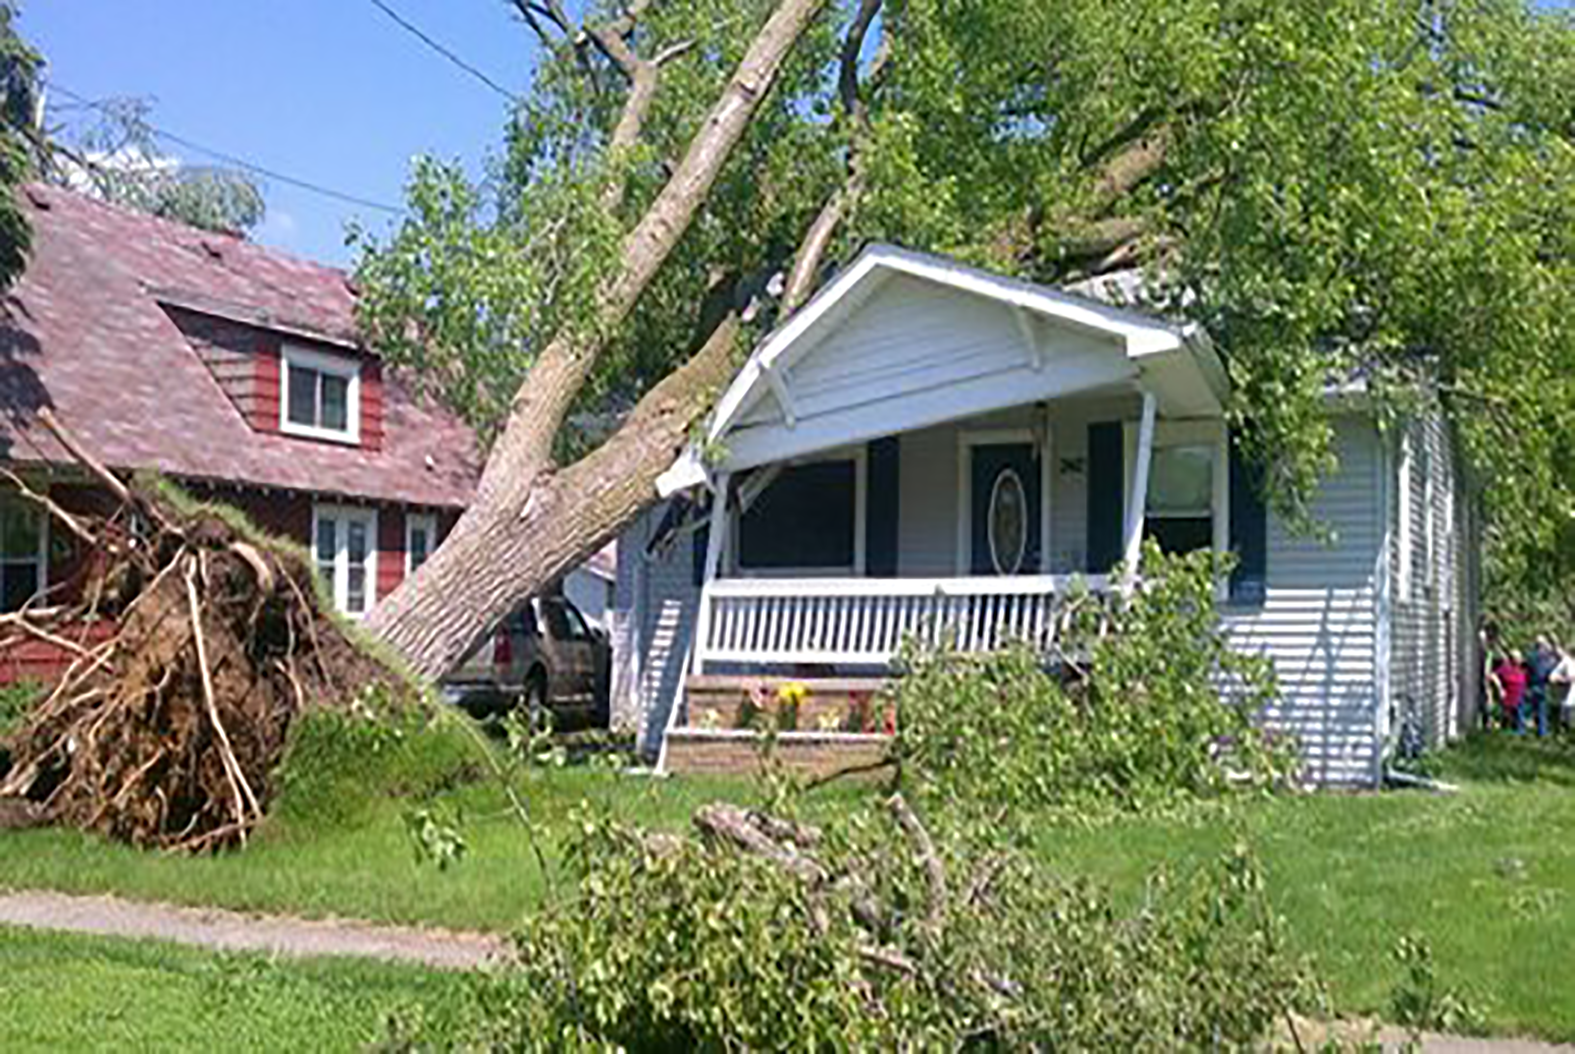 tree-on-house.png